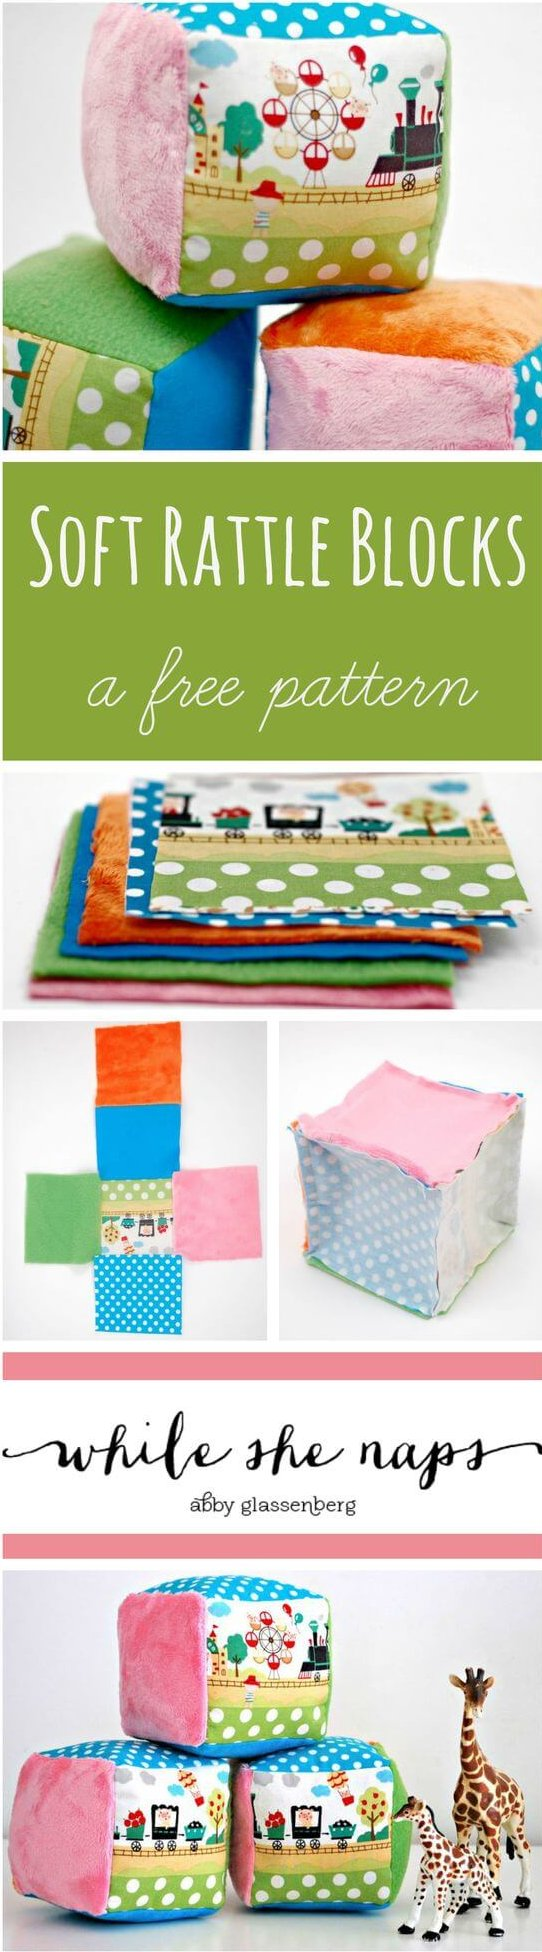 DIY Baby Toys, Homemade Toys, DIY Soft Rattle Blocks